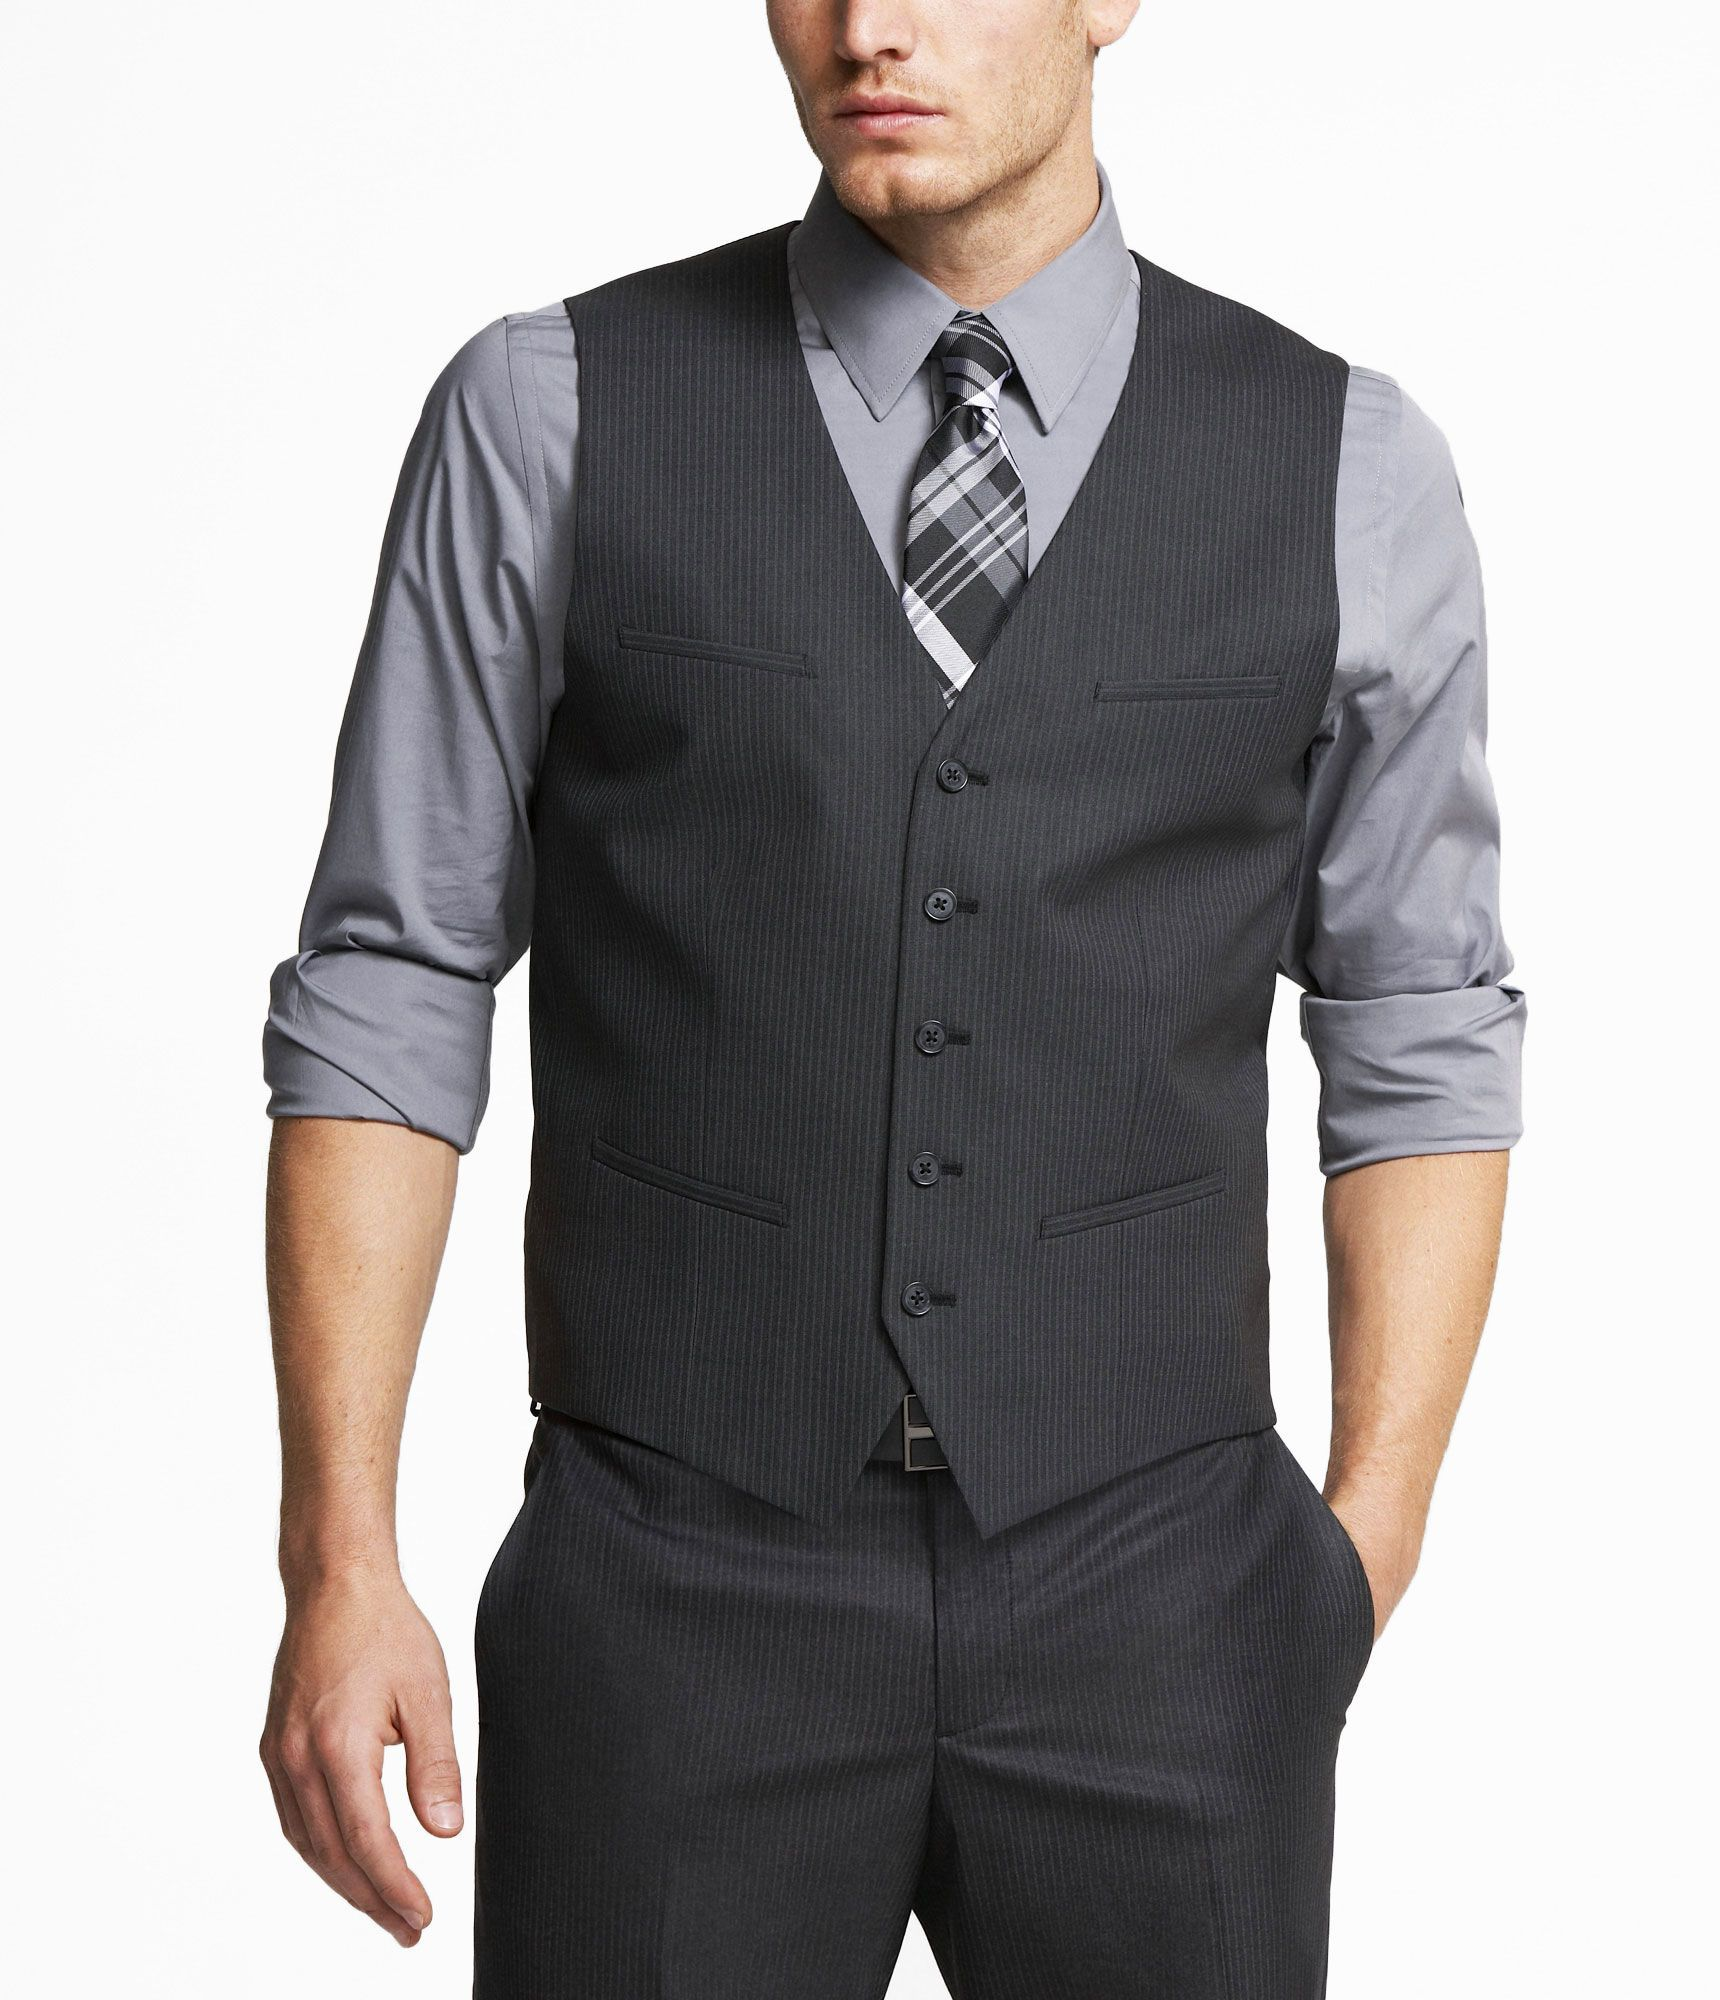 One of my earlier dress-up purchases—this charcoal pinstripe vest+ ...